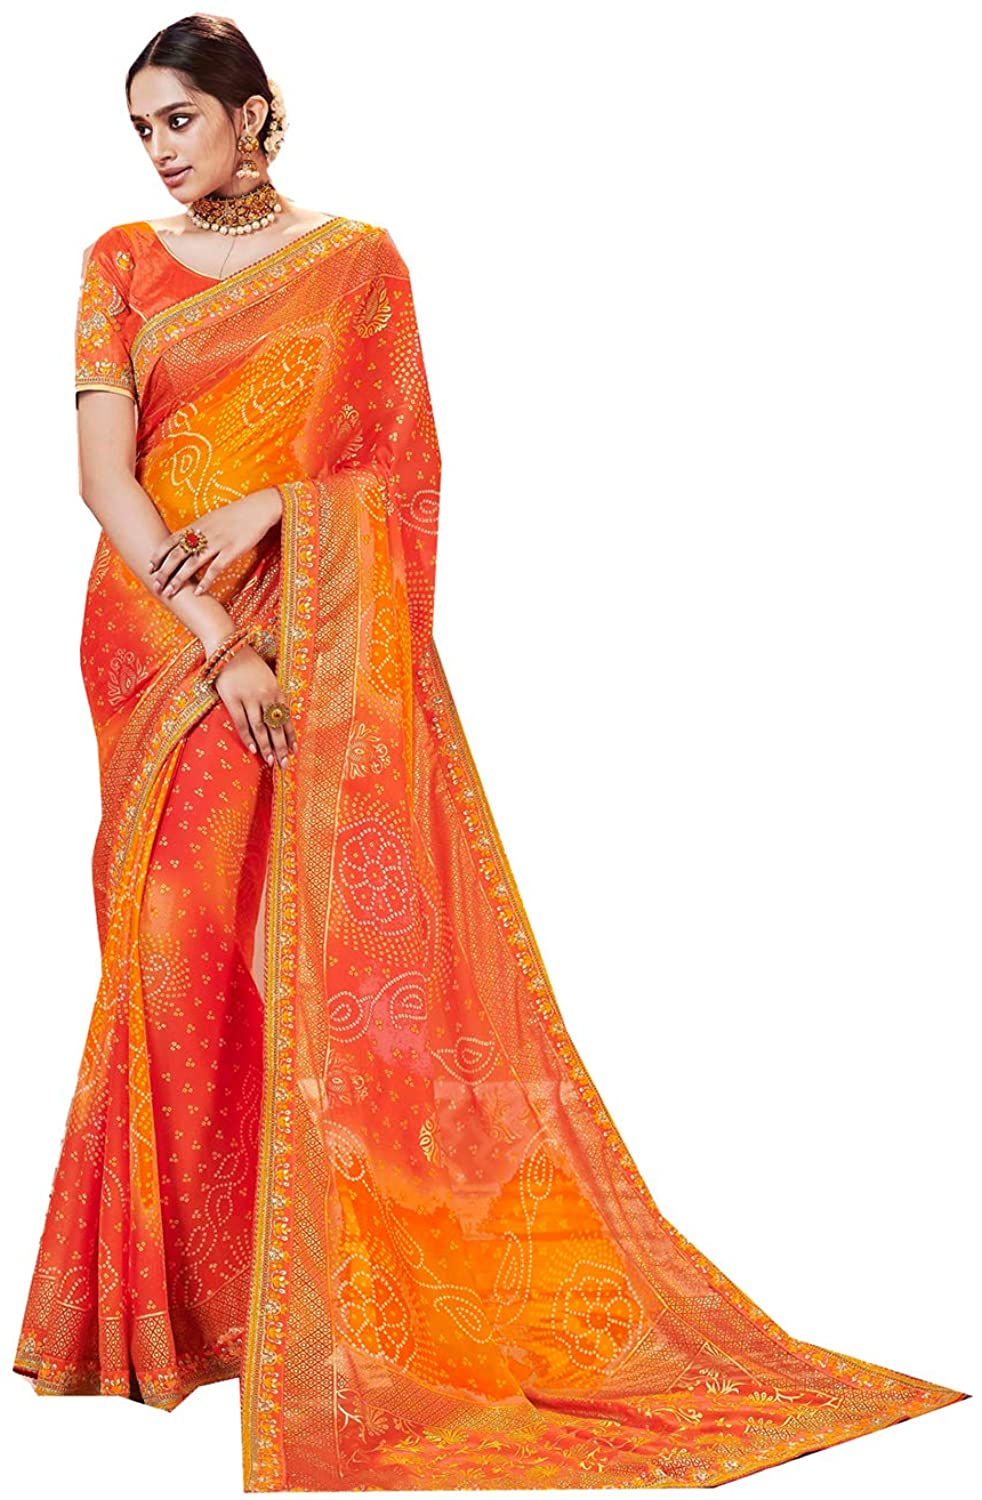 Saree for Women Bollywood Wedding Designer Georgette Sari with Unstitched Blouse.